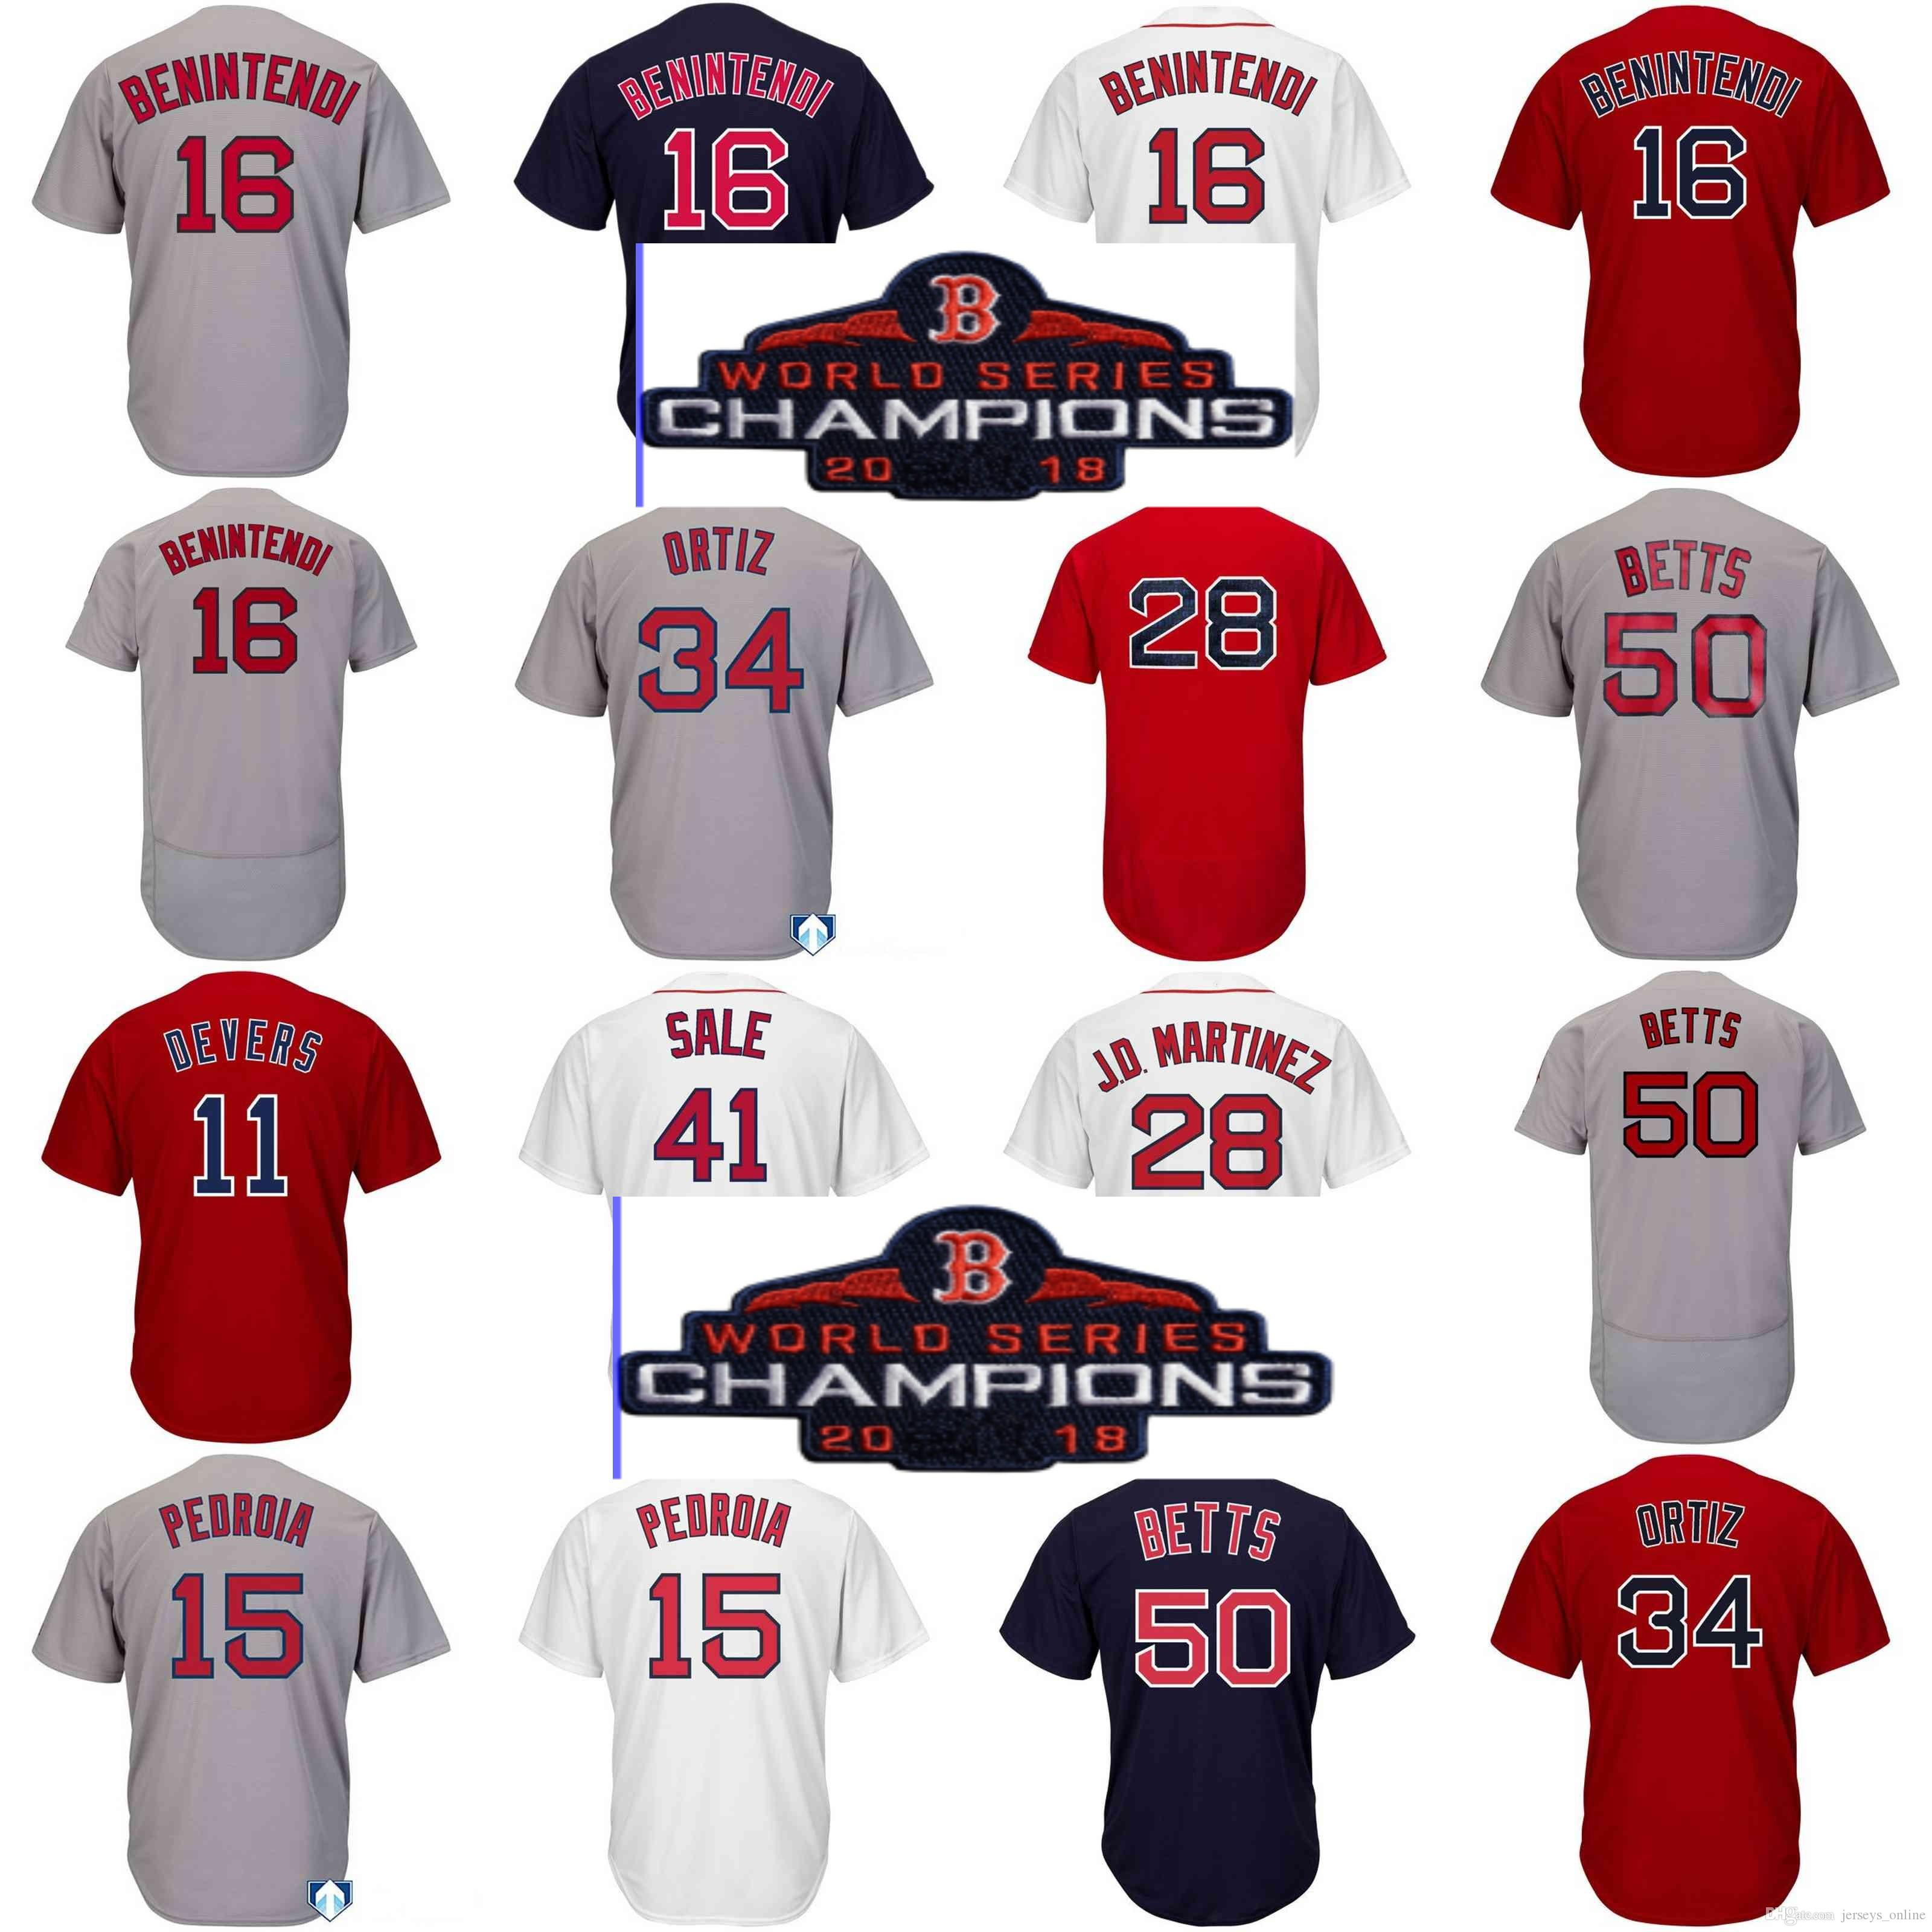 16d13b6c40509 ... home white majestic cool base jersey stitch pro edge sports 07f19  8e37d; best 2019 boston red sox jersey bogaerts pedroia andrew benintendi  david price ...